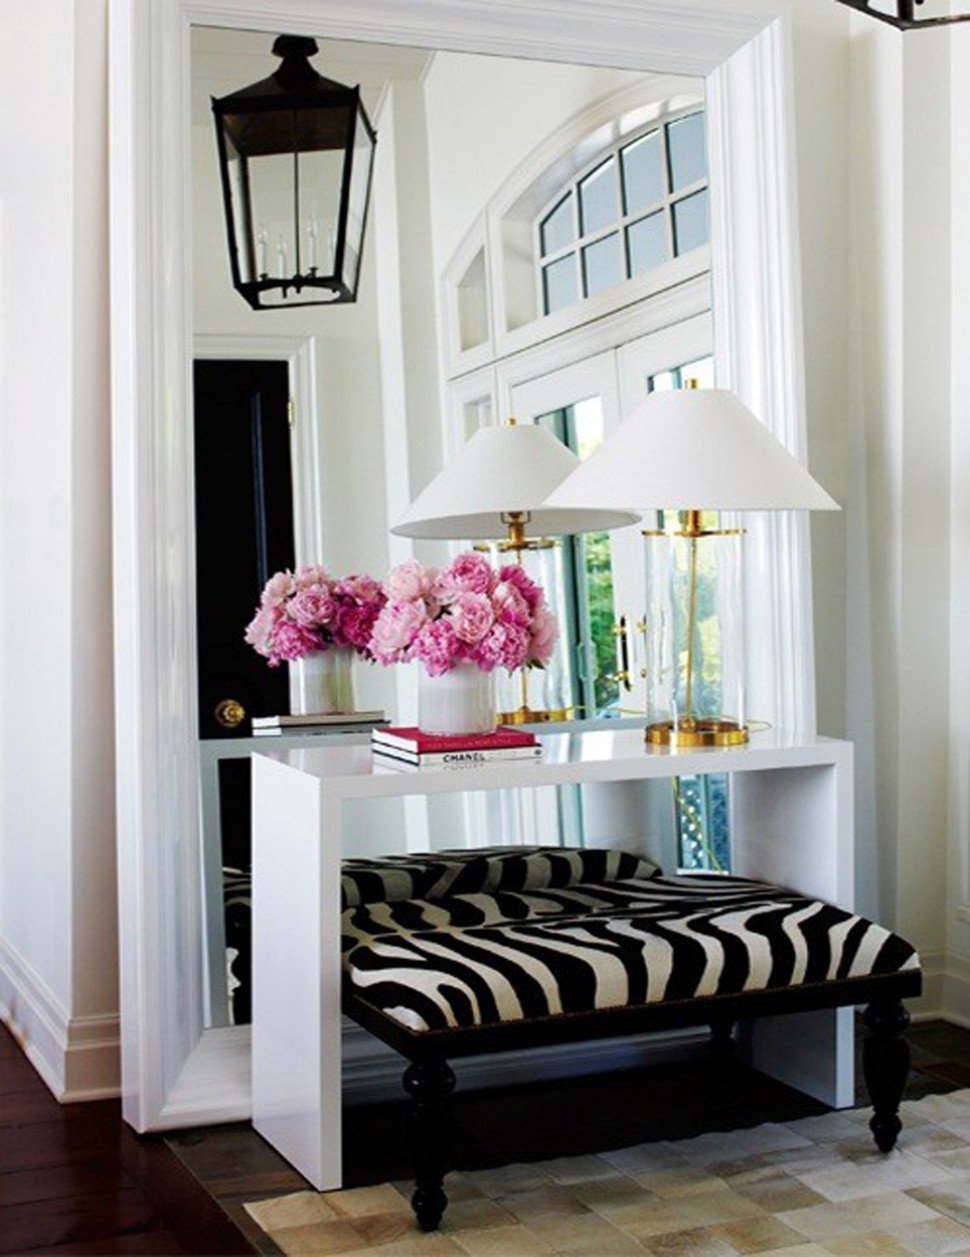 Zebra bench entryway with giant mirror